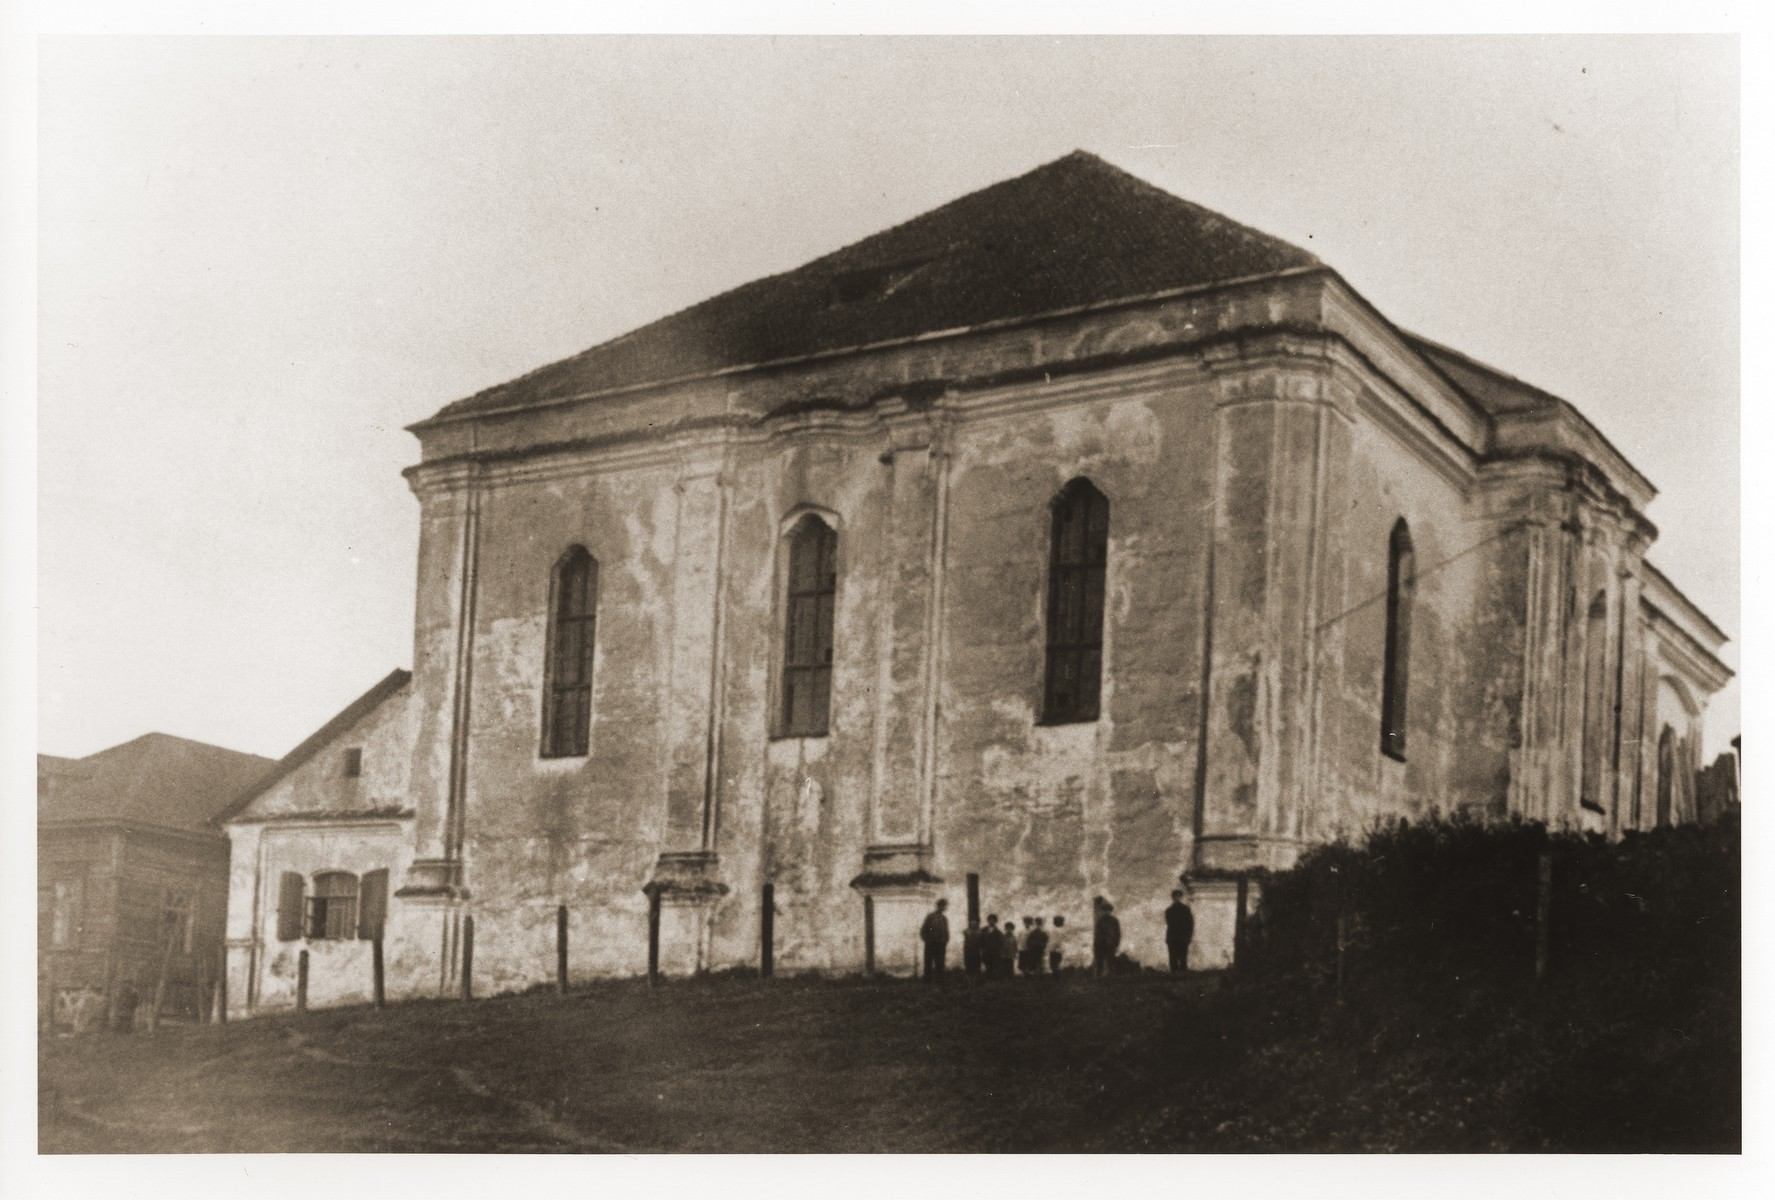 Exterior of the synagogue in Druja, Poland.